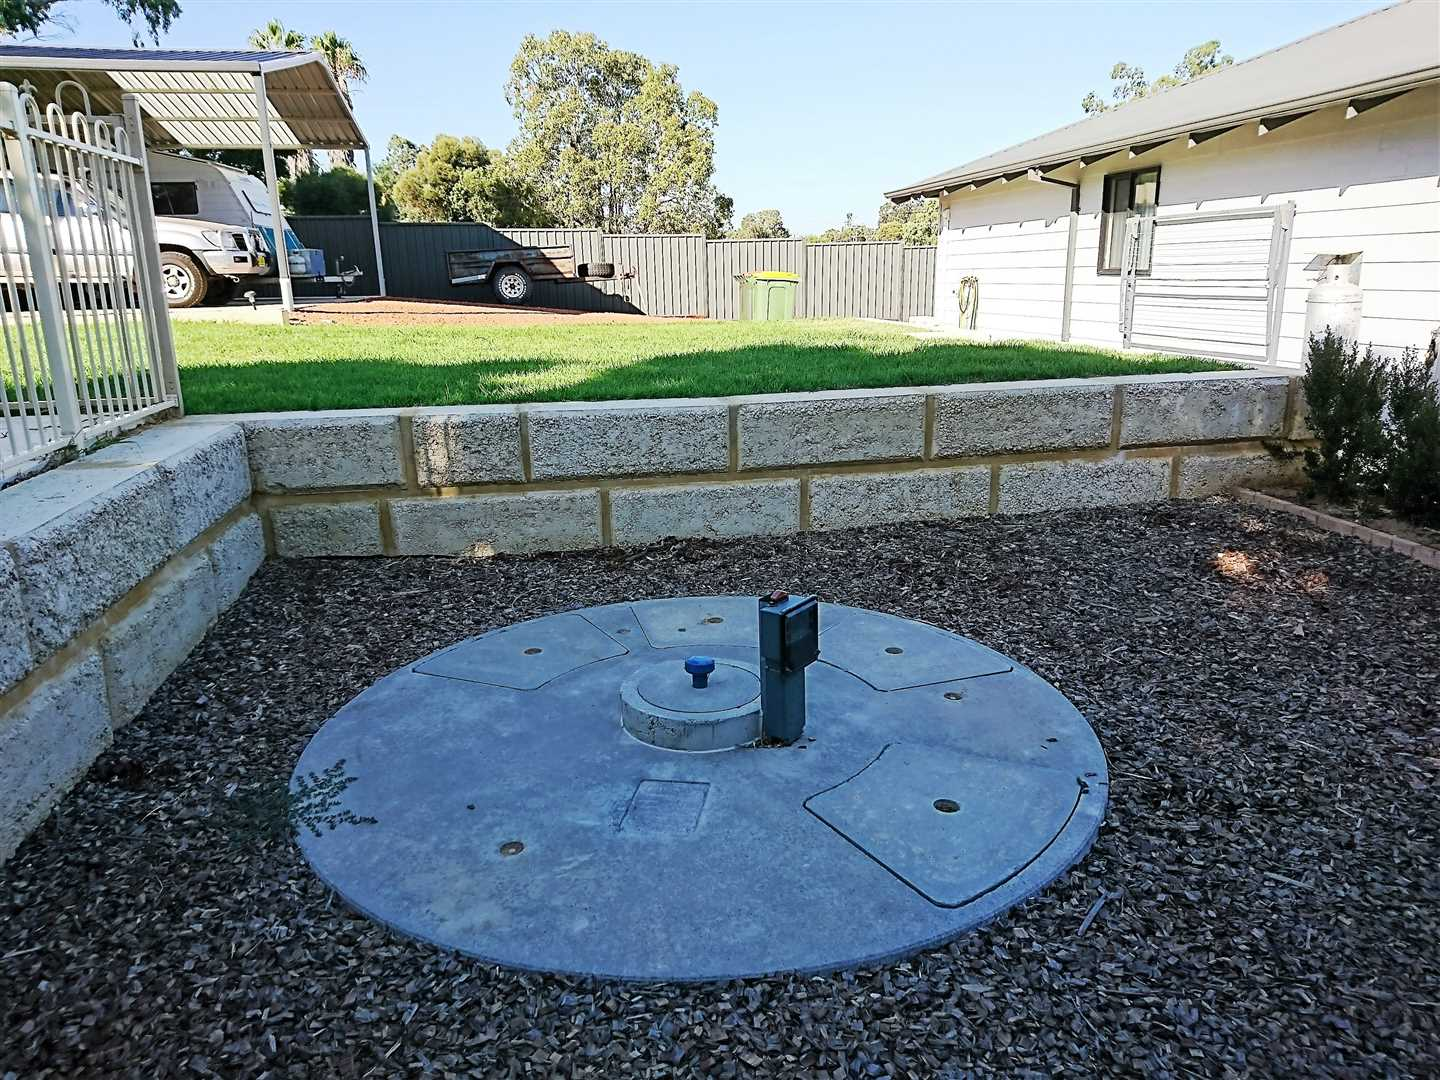 Clearwater/greywater treatment system